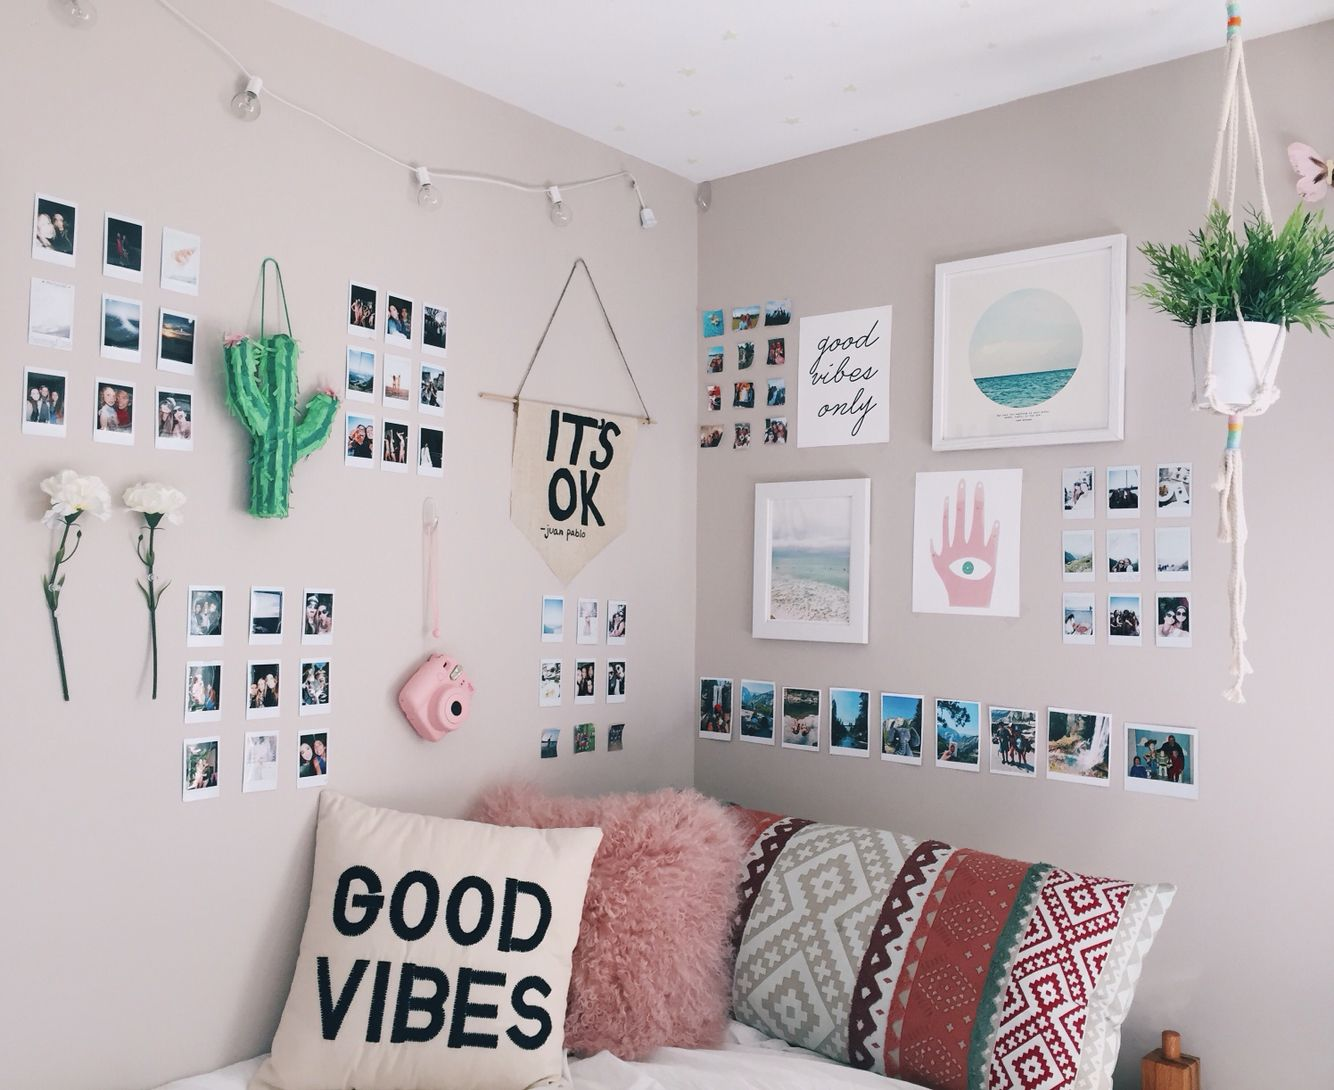 Tumblr Bedroom Wall Ideas My Room More Tumblr Bedroom Wall Ideas